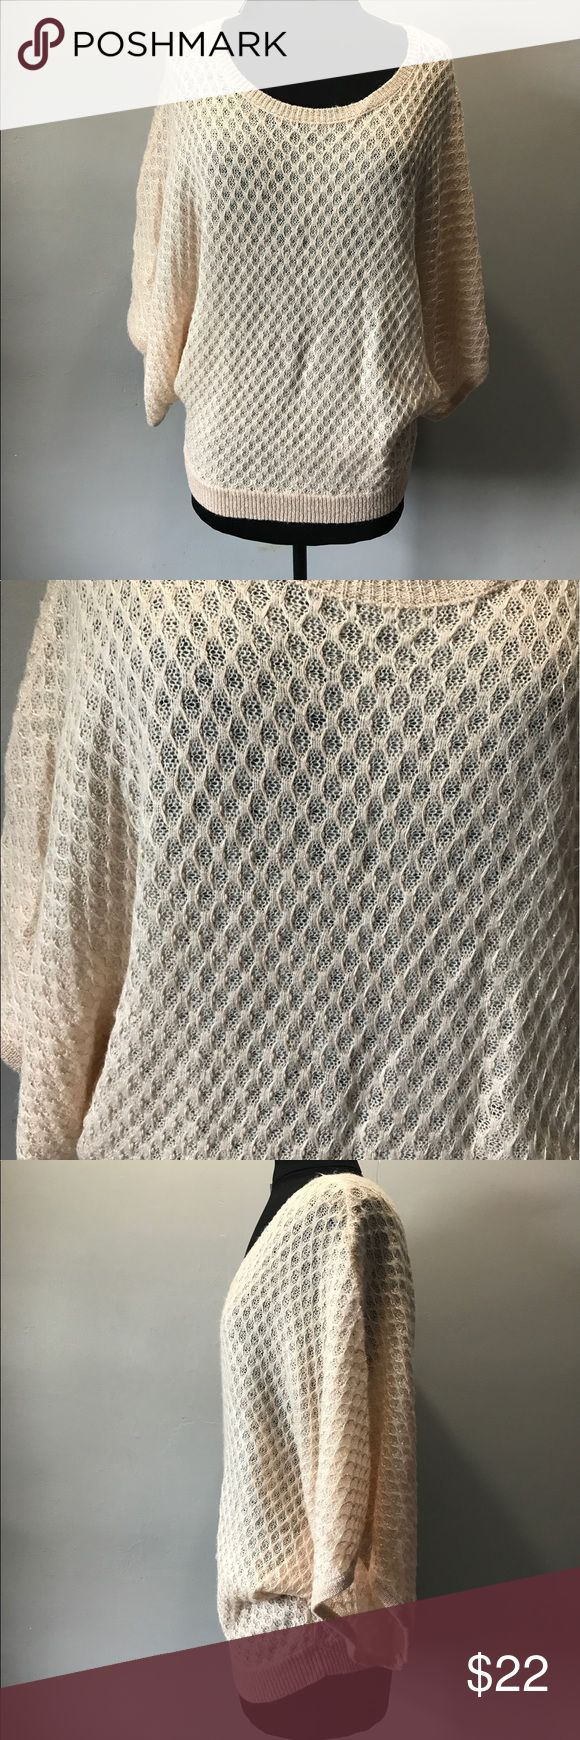 NWT New York & co small batwing top Brand new with the tag Acrylic  Nylon Size small  Cream batwing knit top New York & Company Tops Blouses